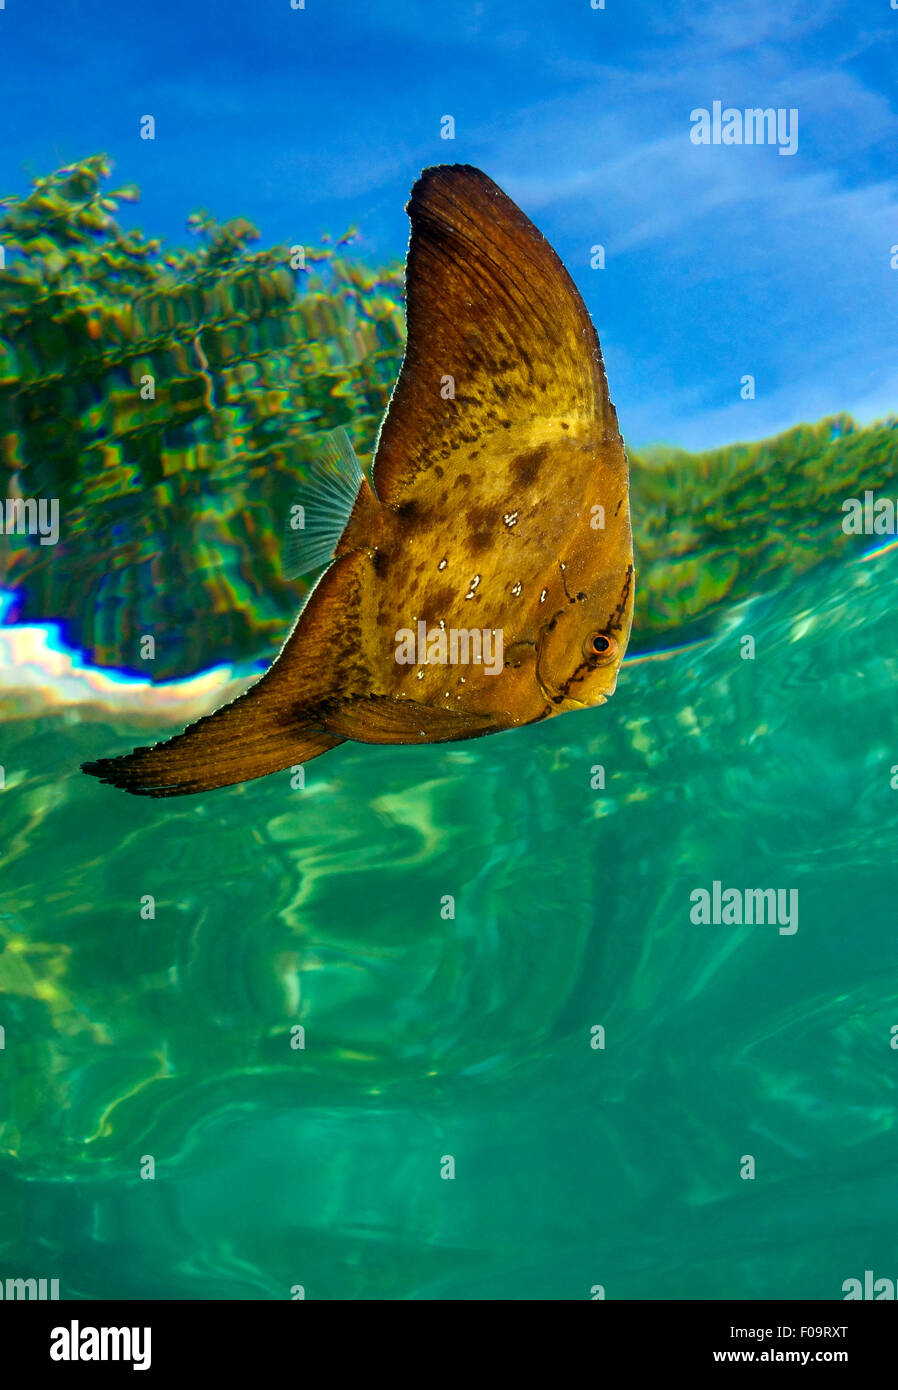 SPADELFISH WITH SURFACE REFLEXION THROUGH THE WATER - Stock Image